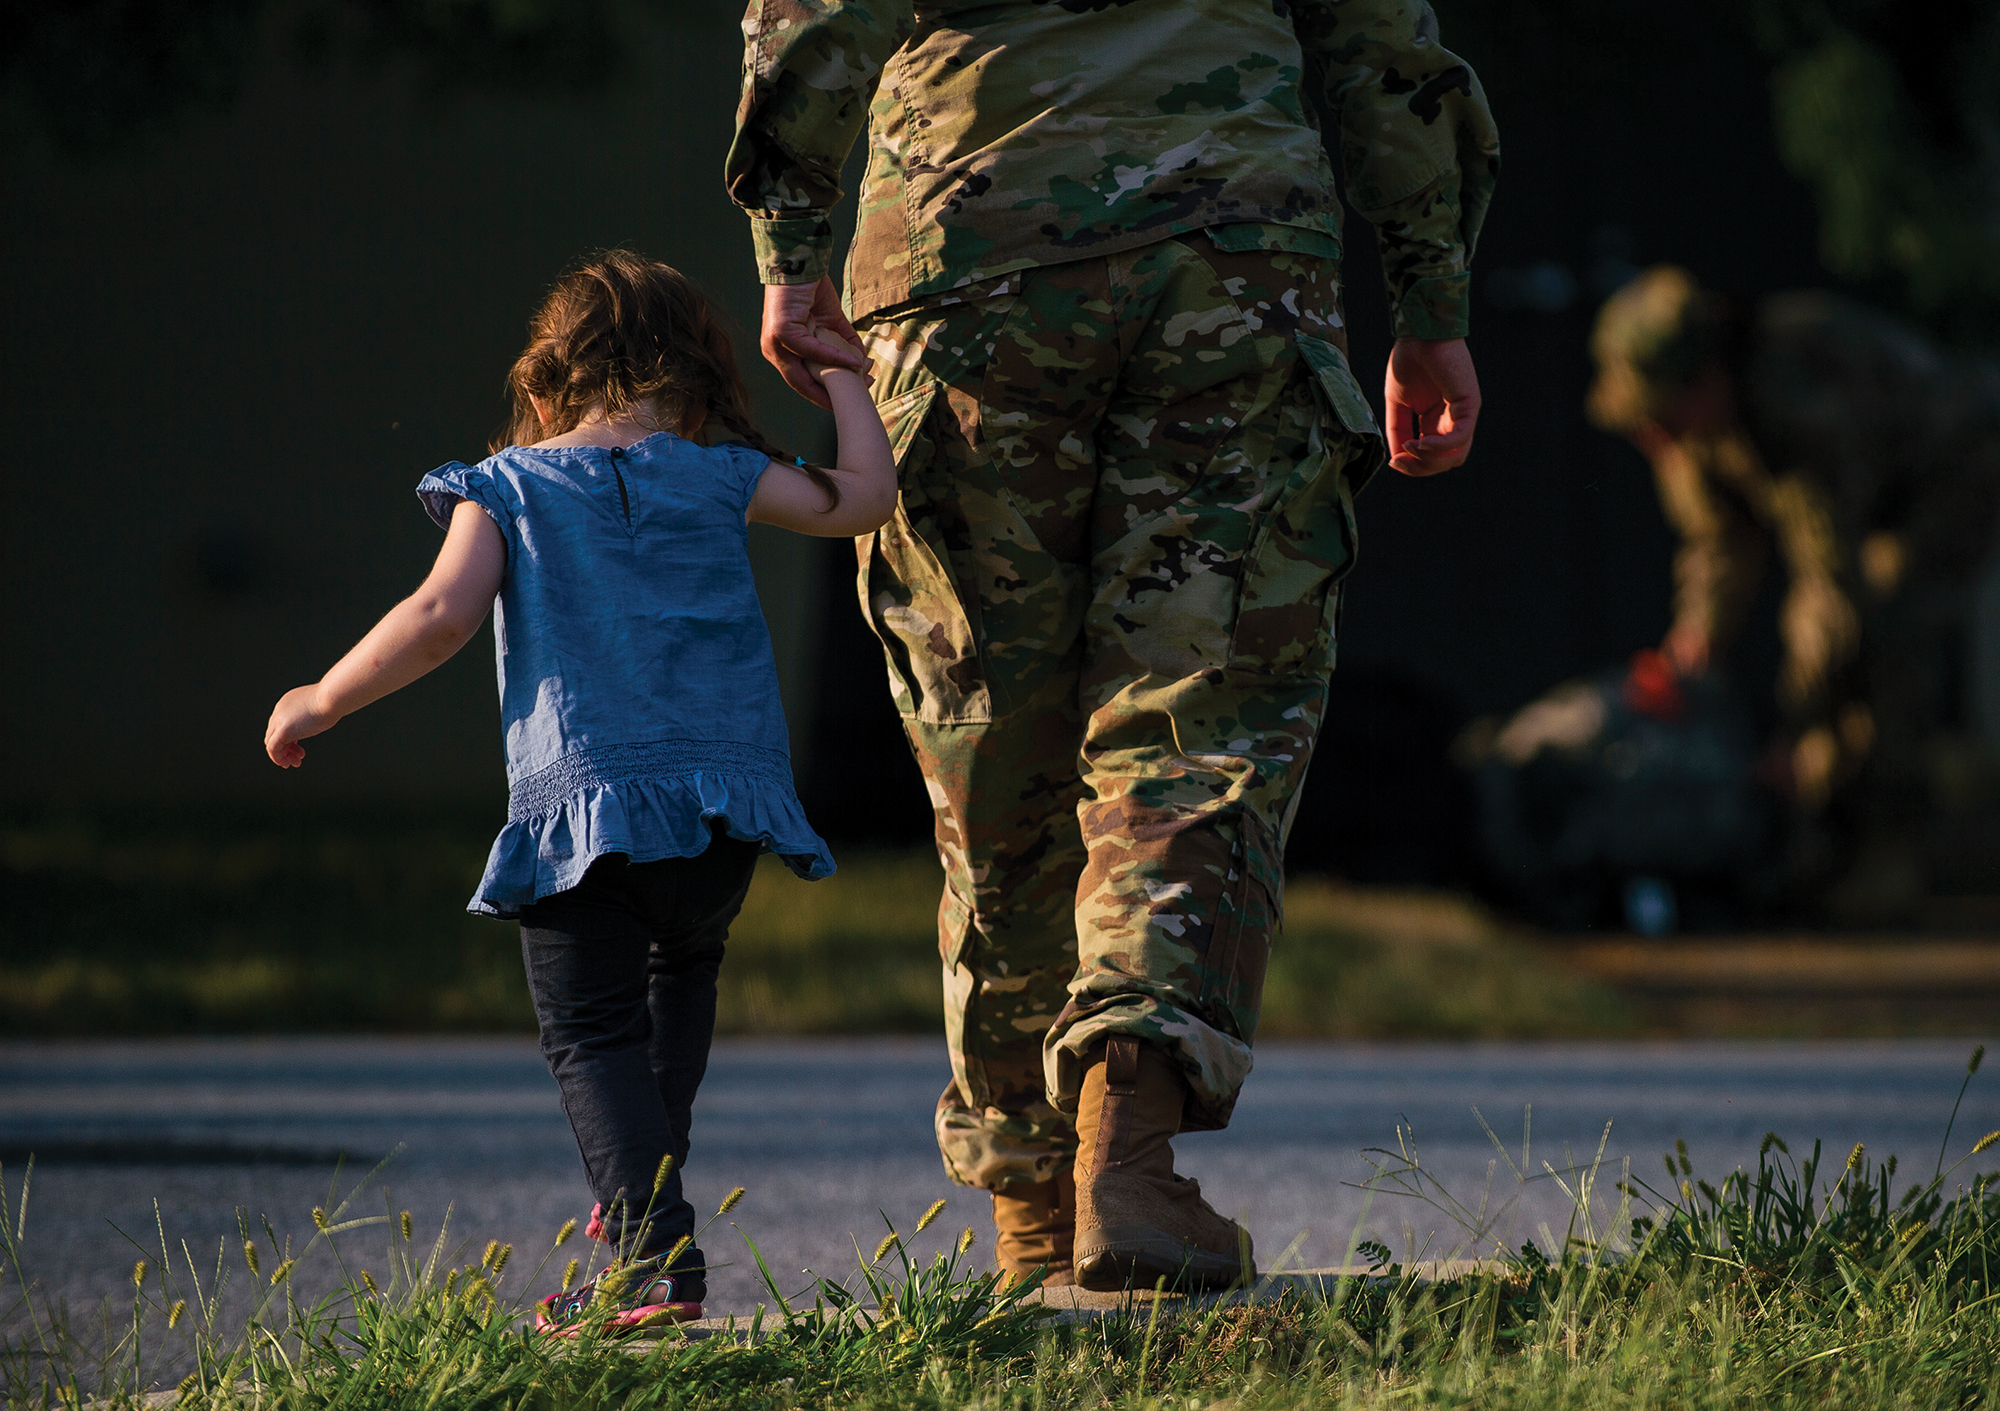 Little girl holding hand of military parent